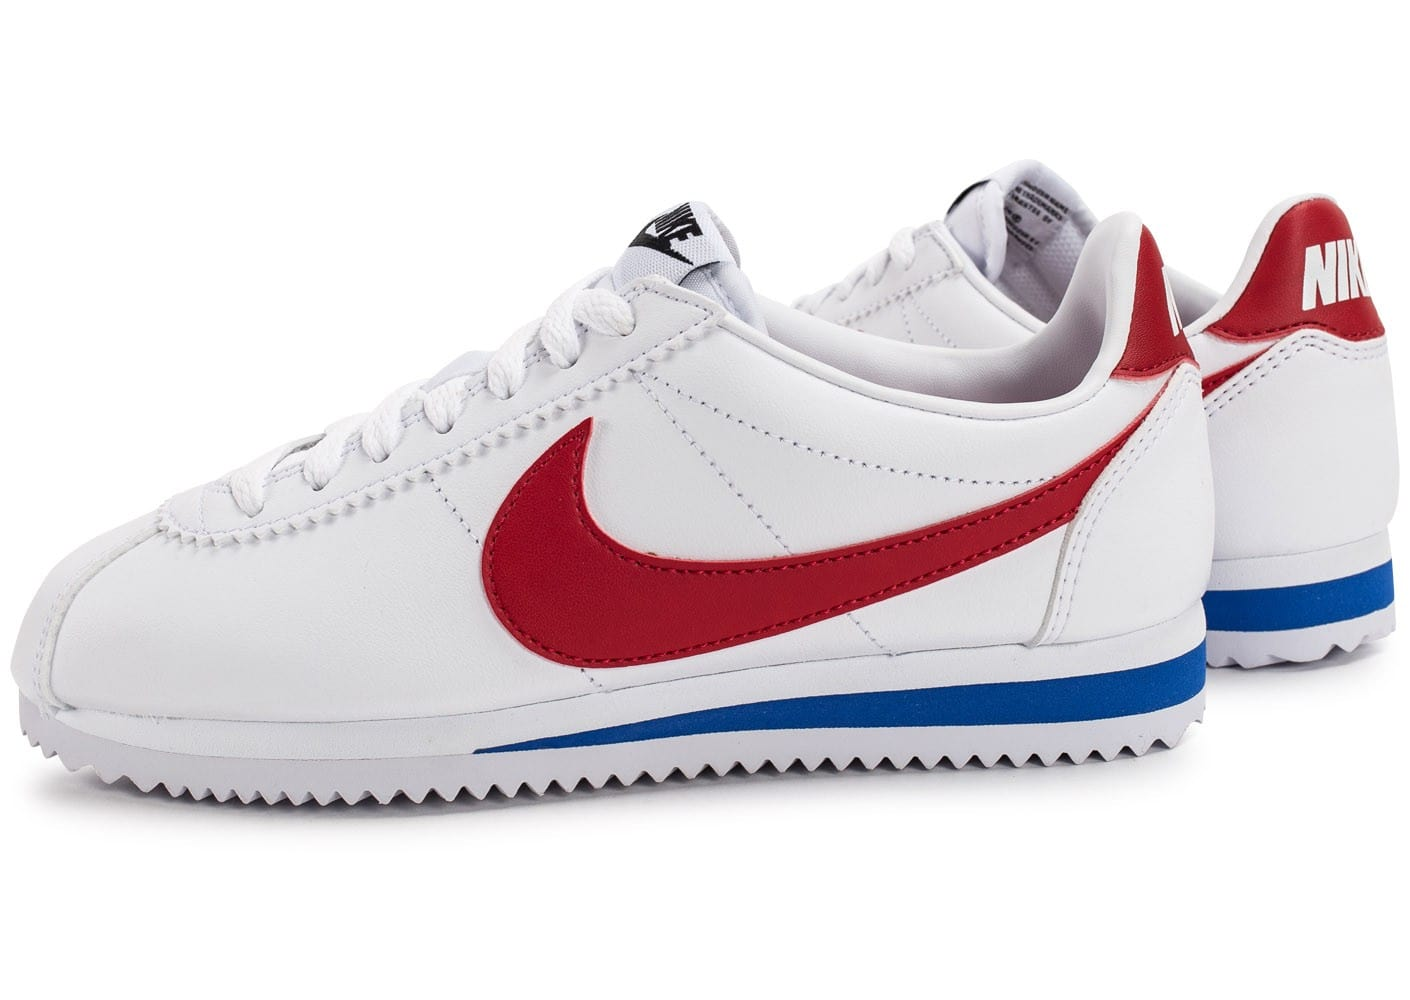 Nike Classic Cortez Friday Leather Chaussures Noir Friday Cortez Chausport 367631